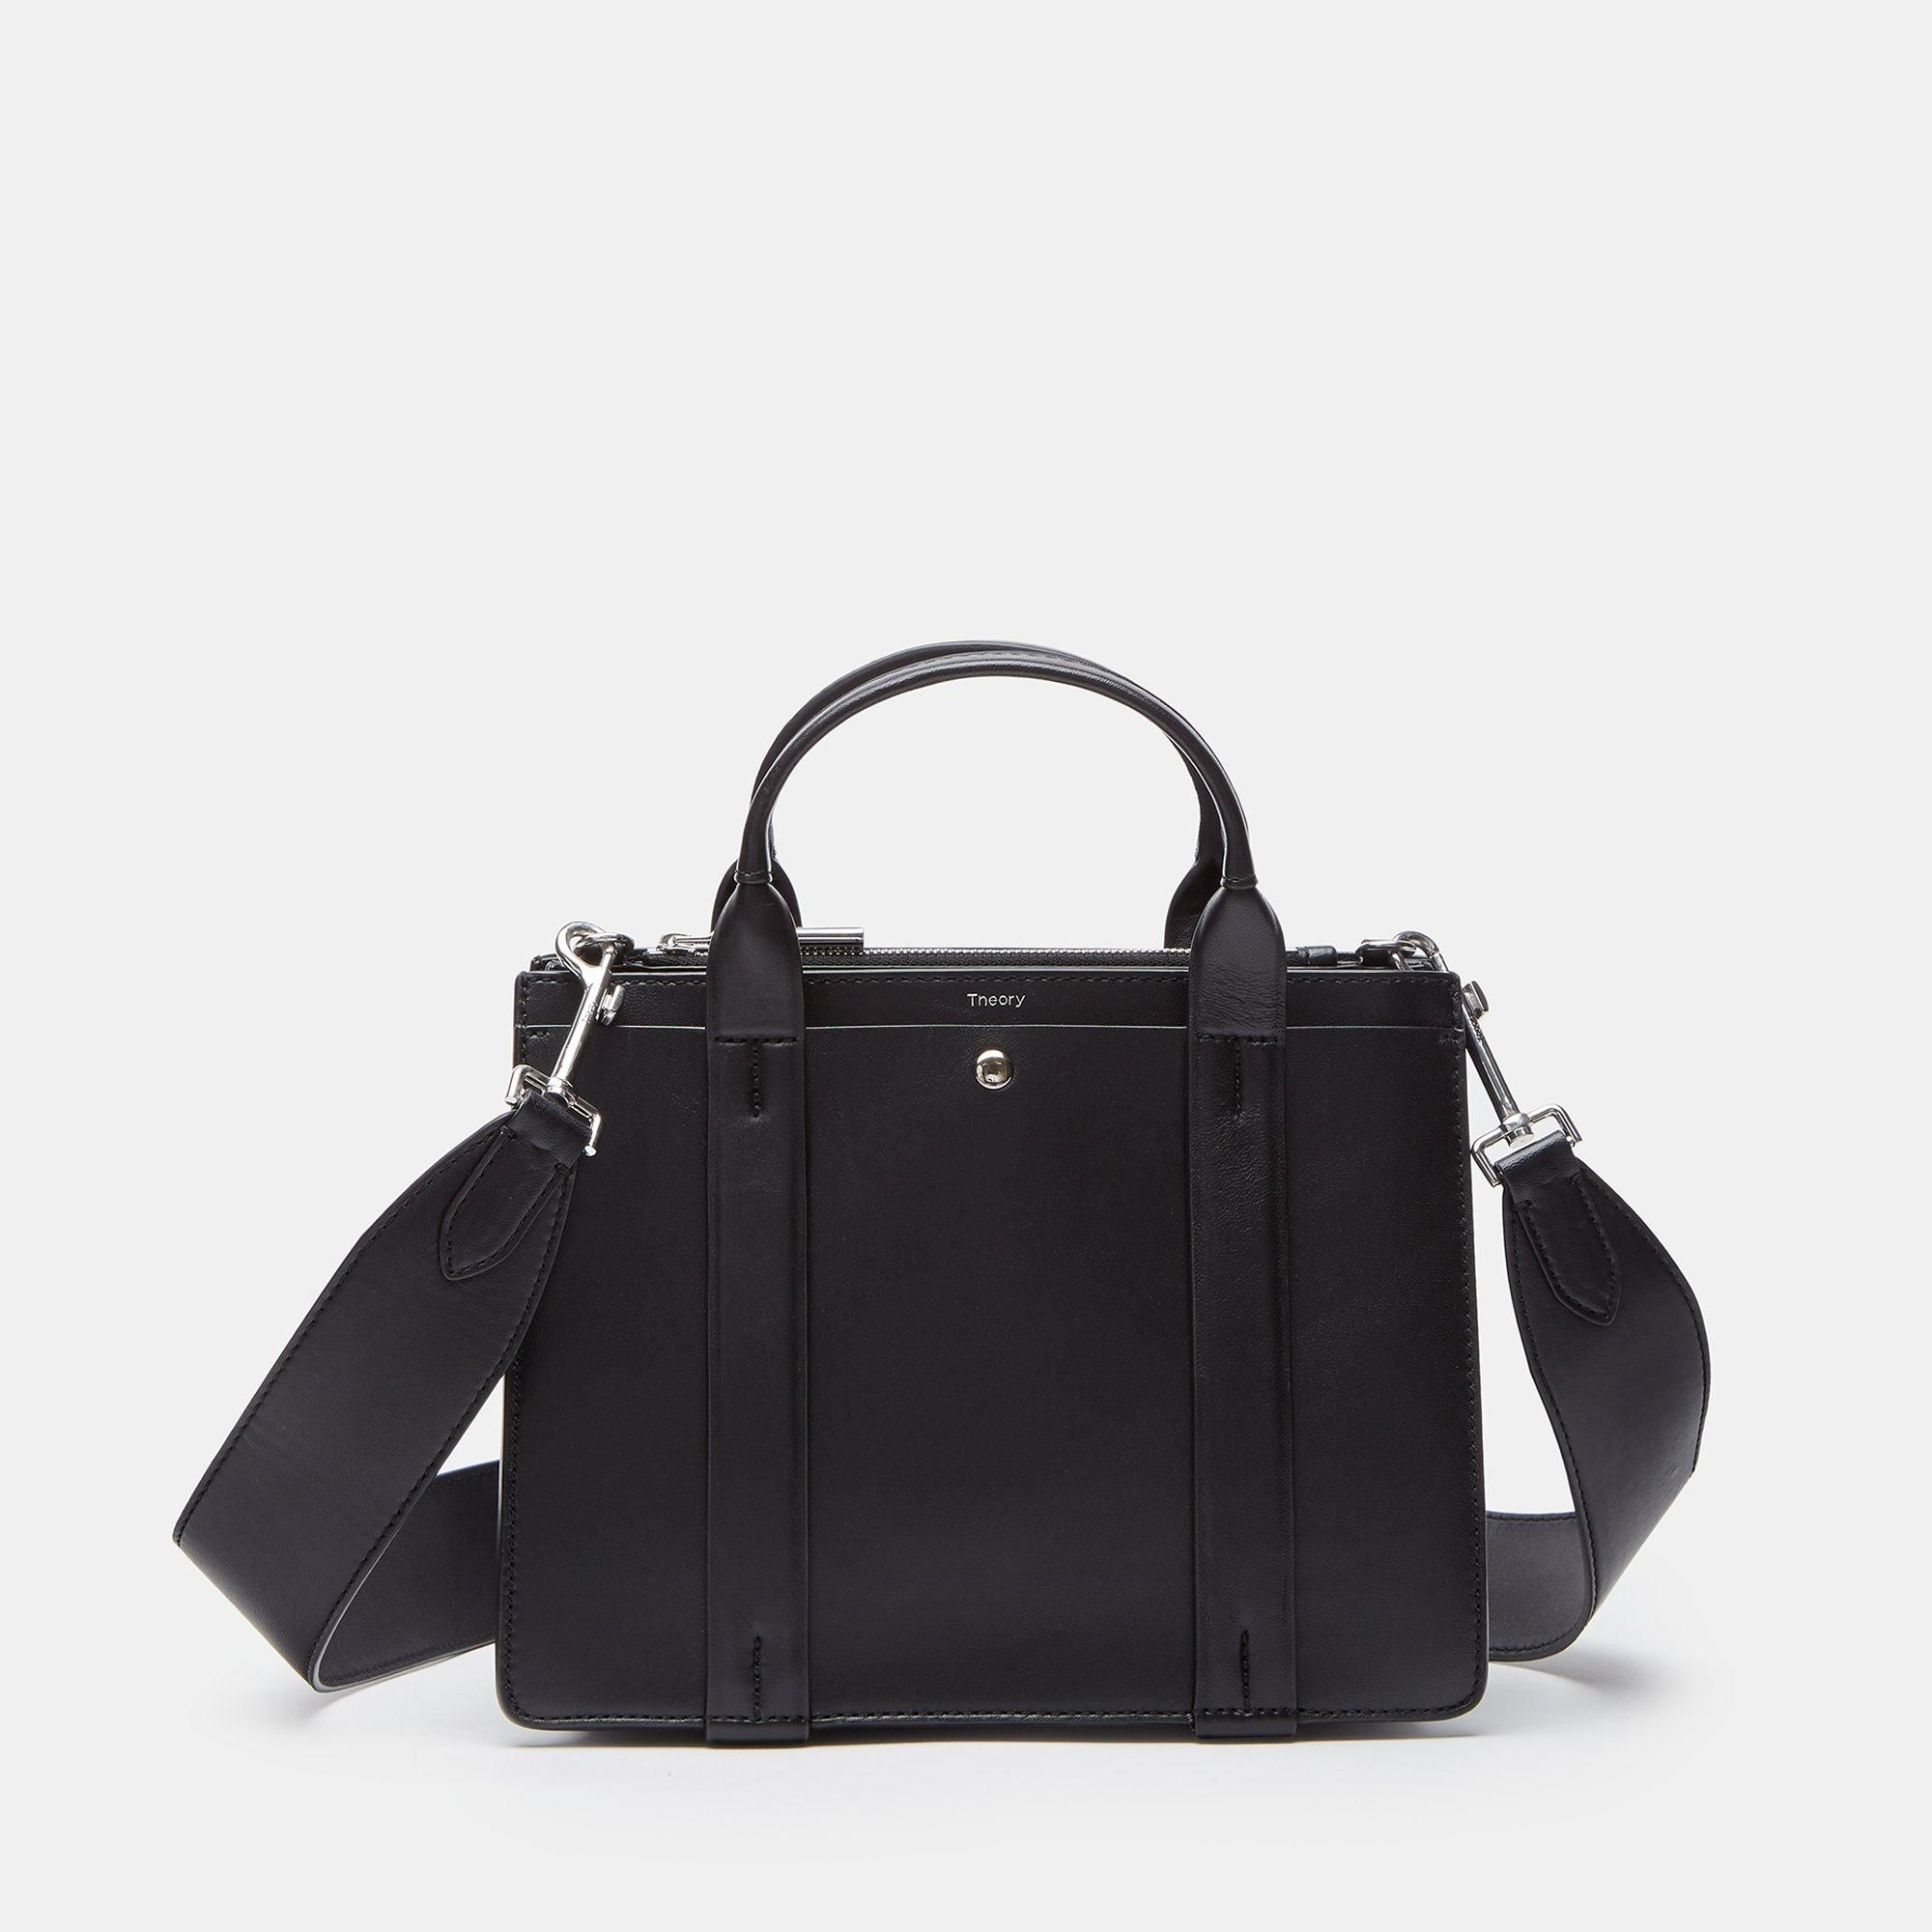 39893bd6876 Null | pretty presents | Bags, Leather, Women's accessories